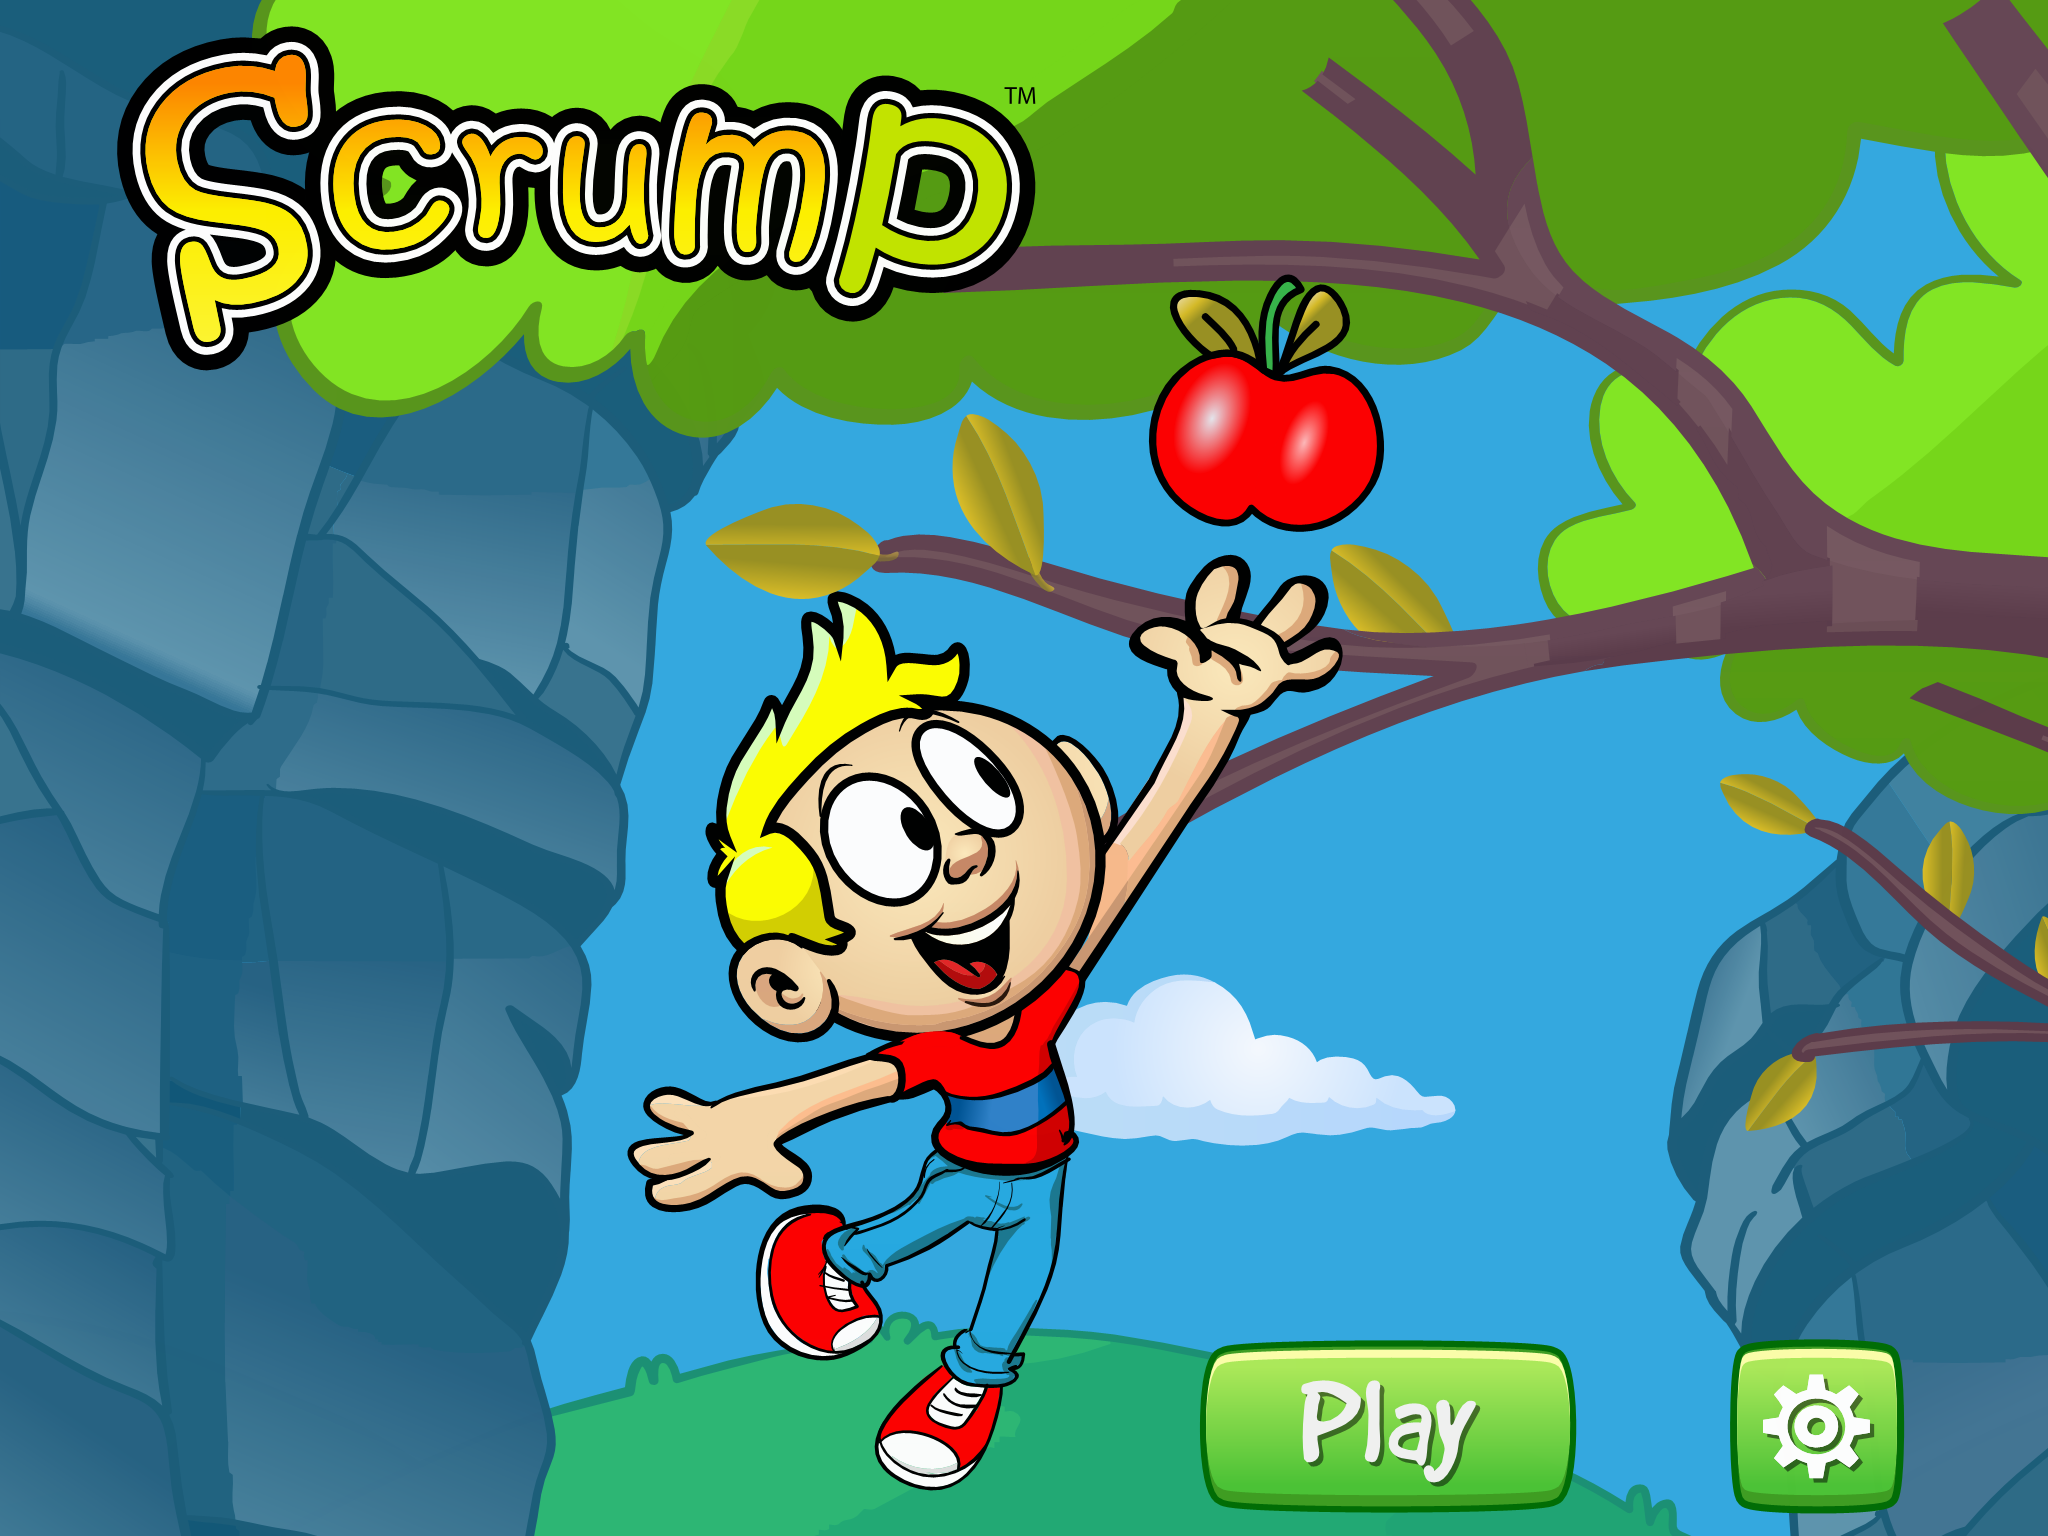 Bounce as high as you can to grab fruit and reach new levels in Scrump